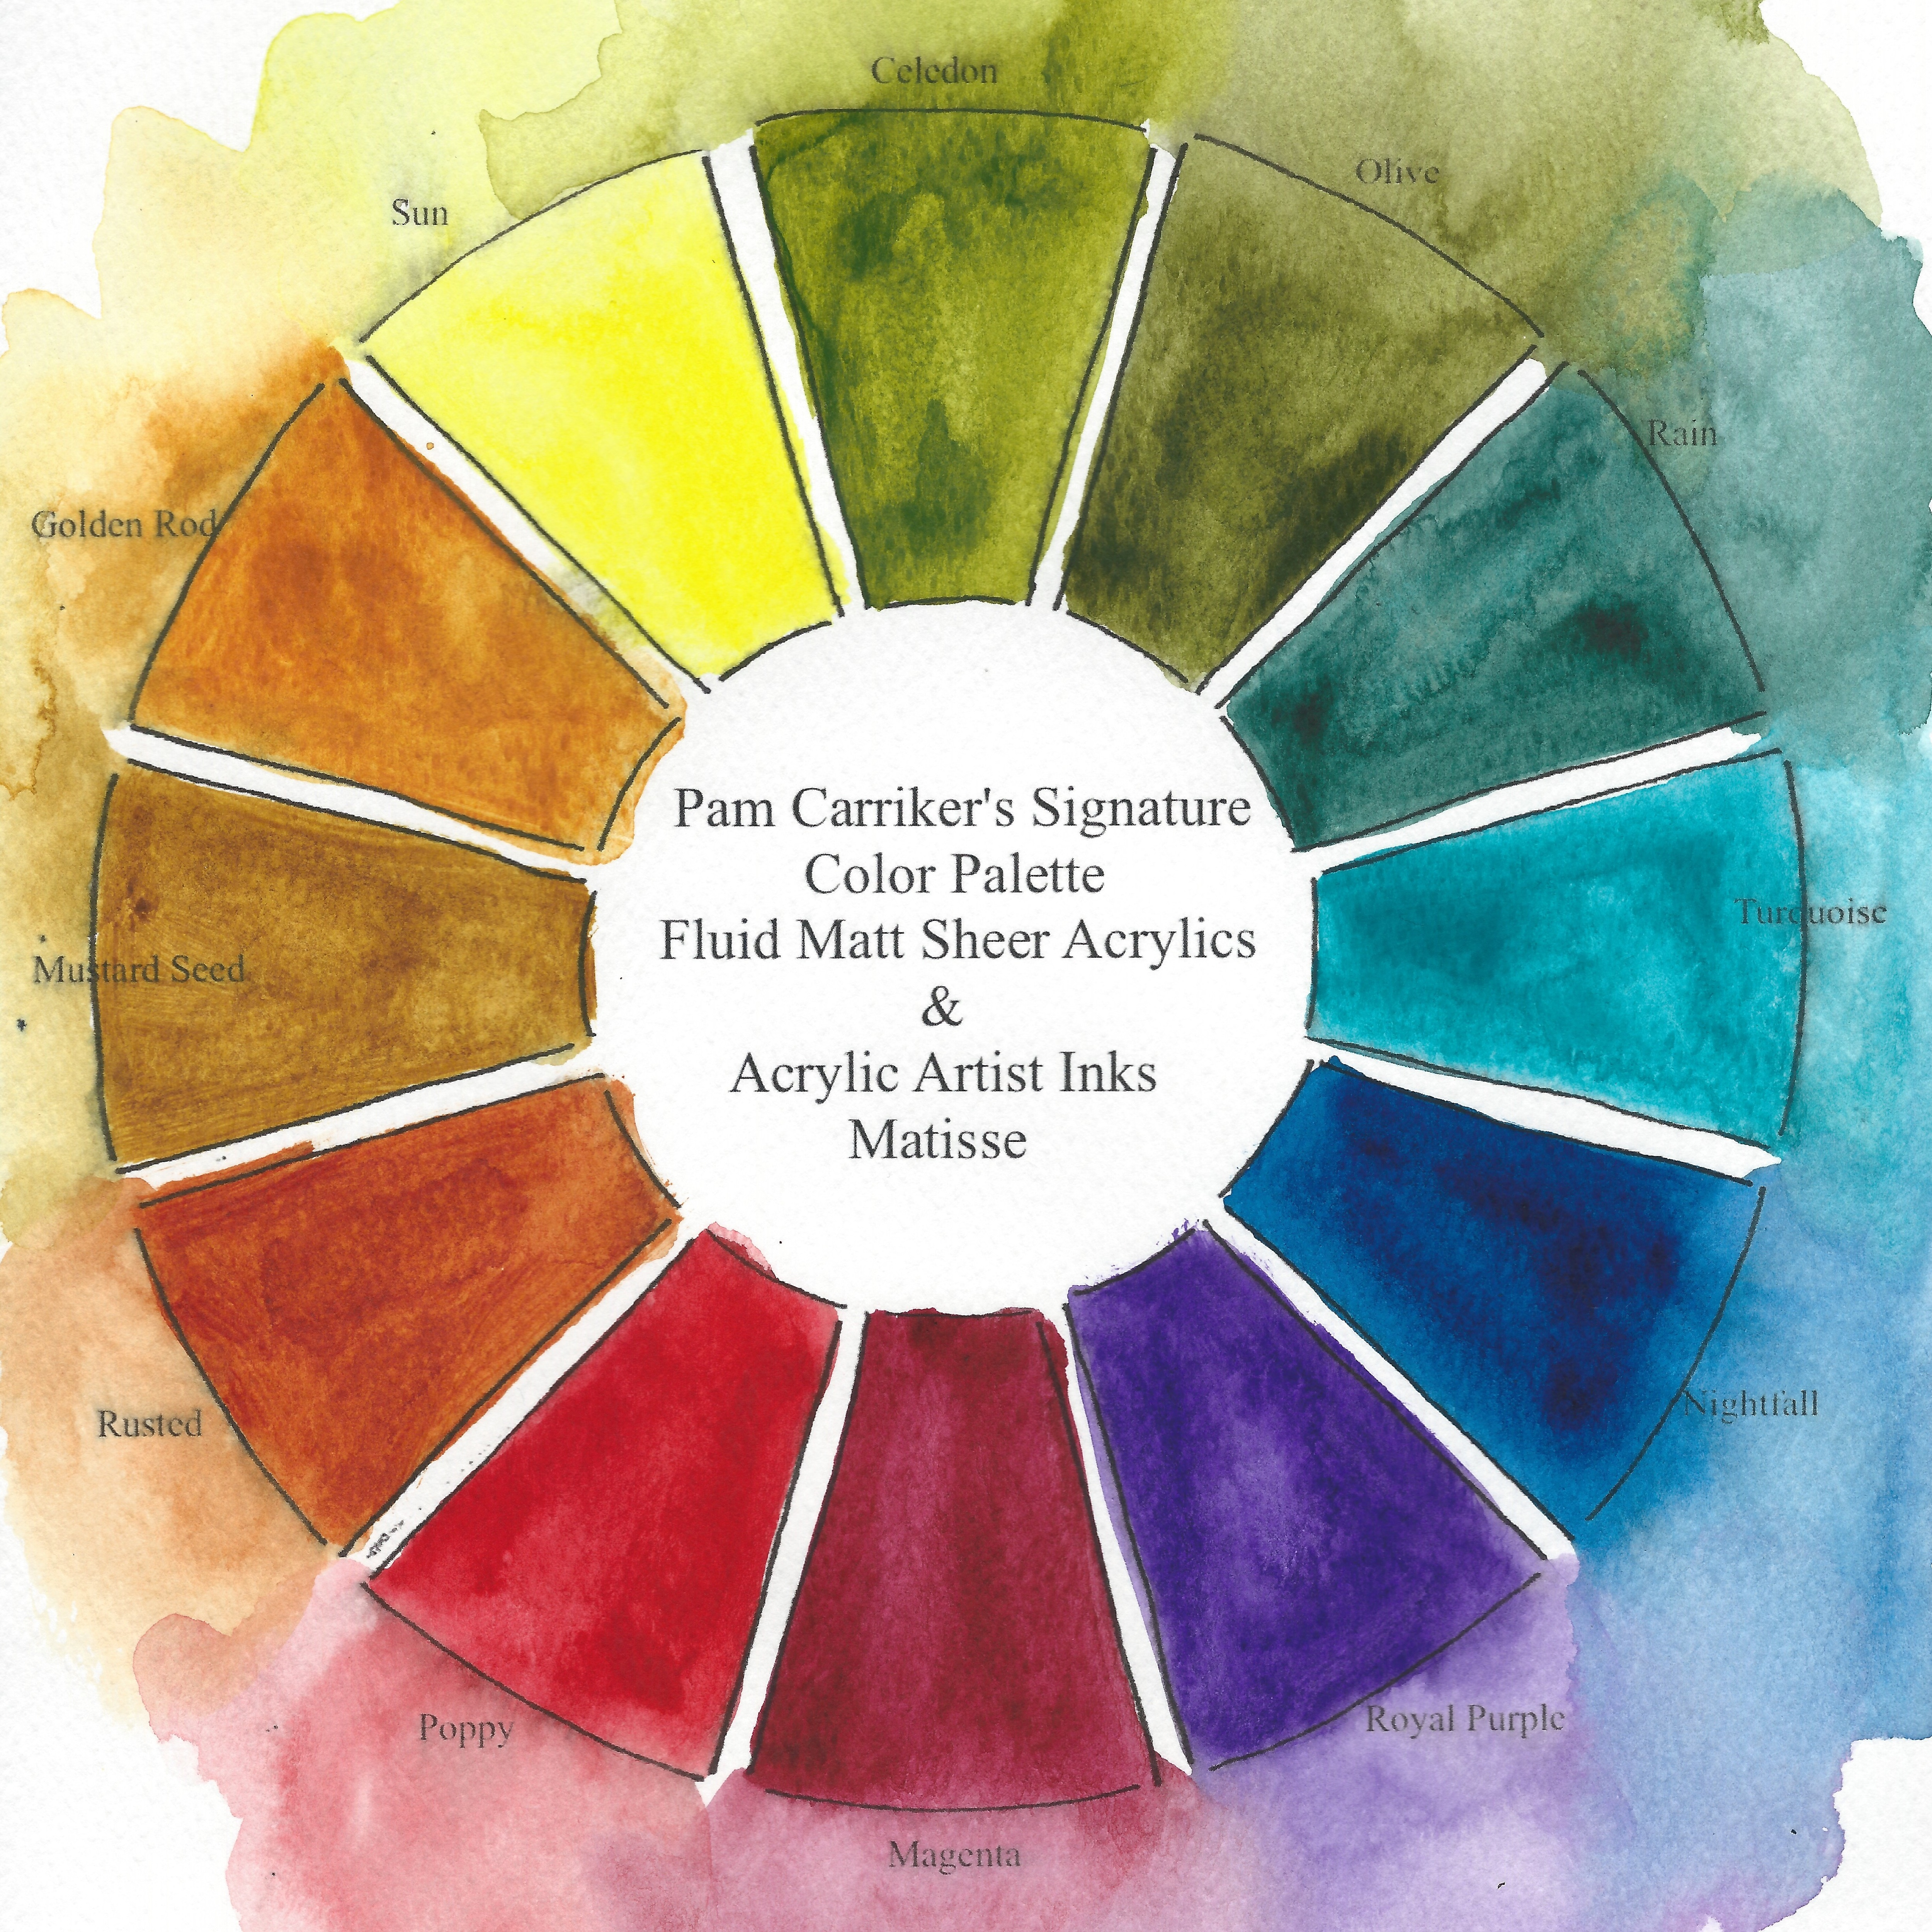 Colors That Work Well Together 187 Signature Mixed Media Products Art At The Speed Of Life